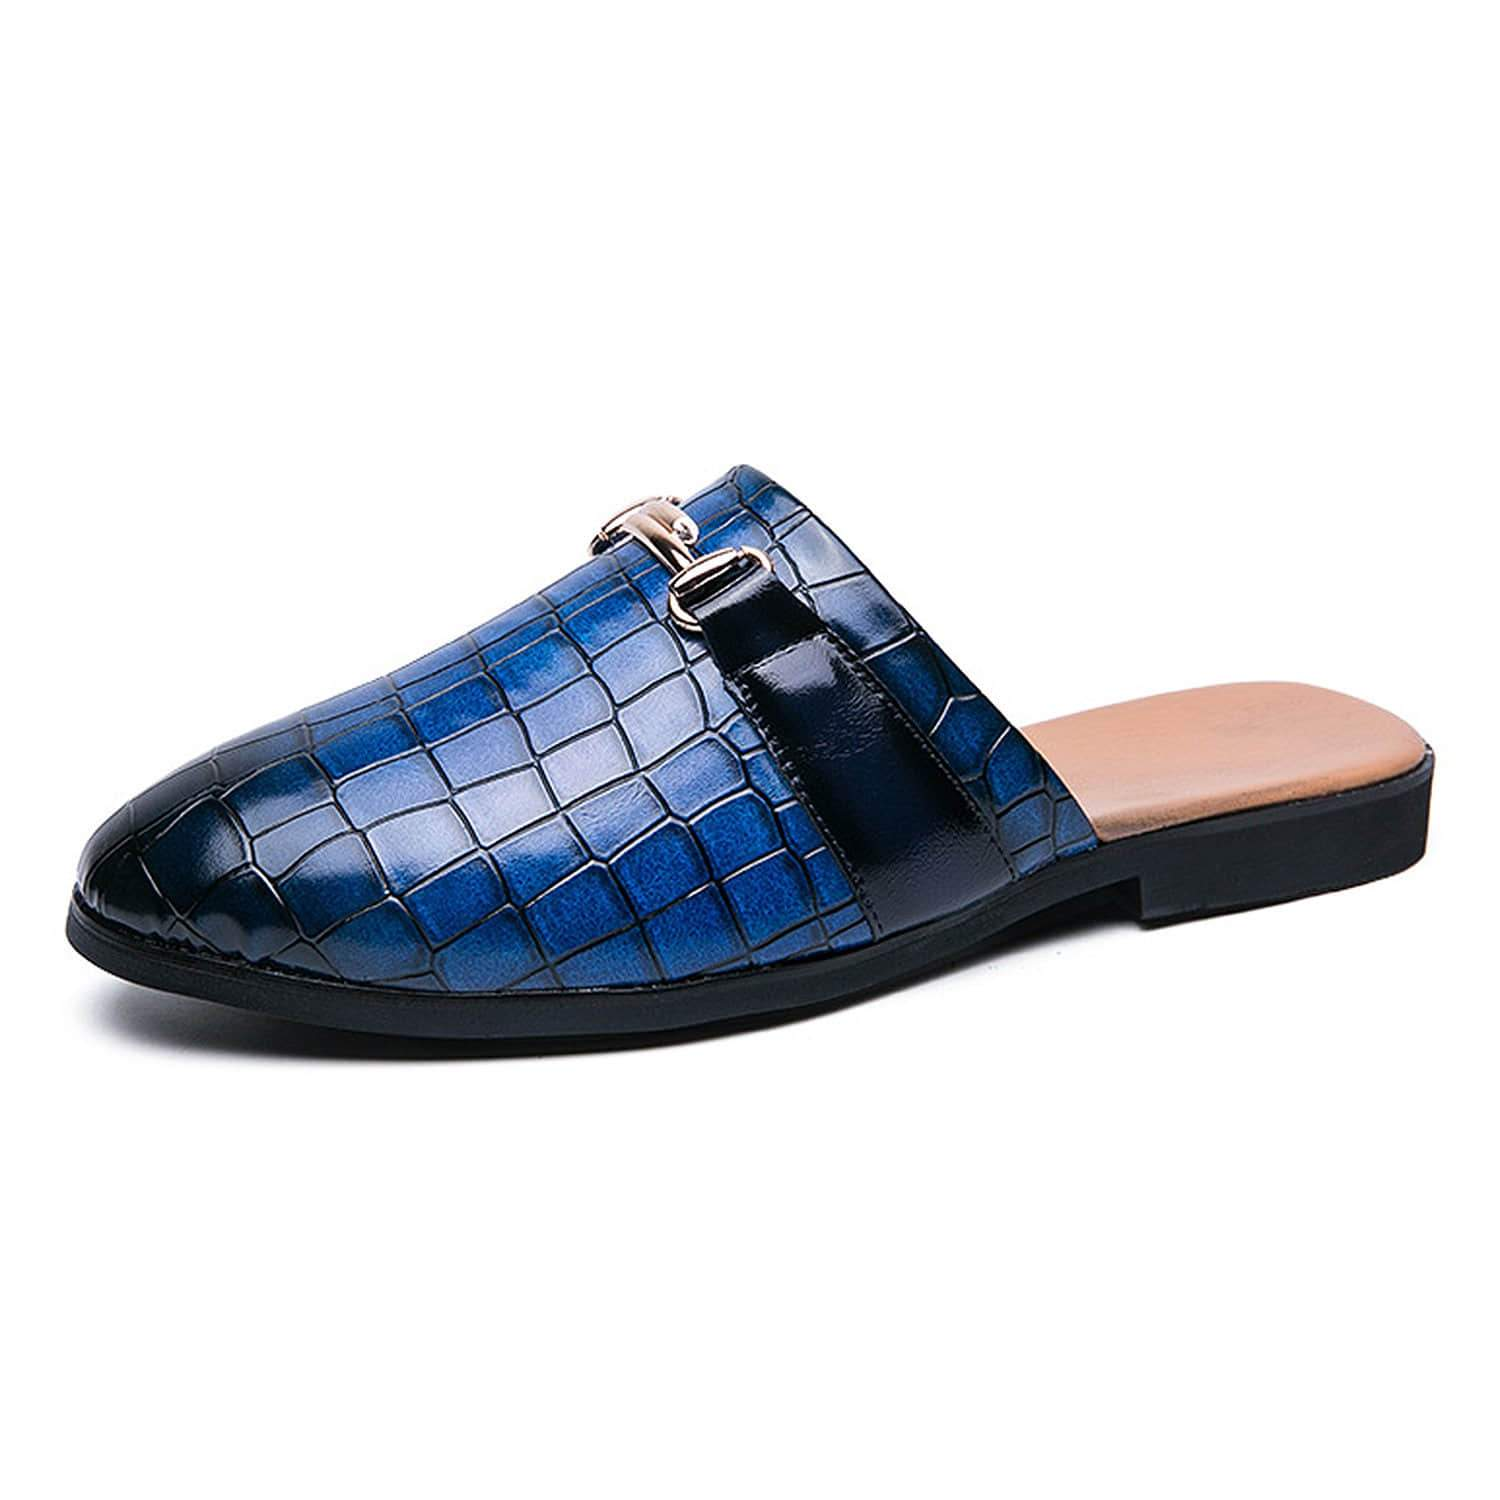 Men's Leather Buckle Pointed Toe Gradient Mules